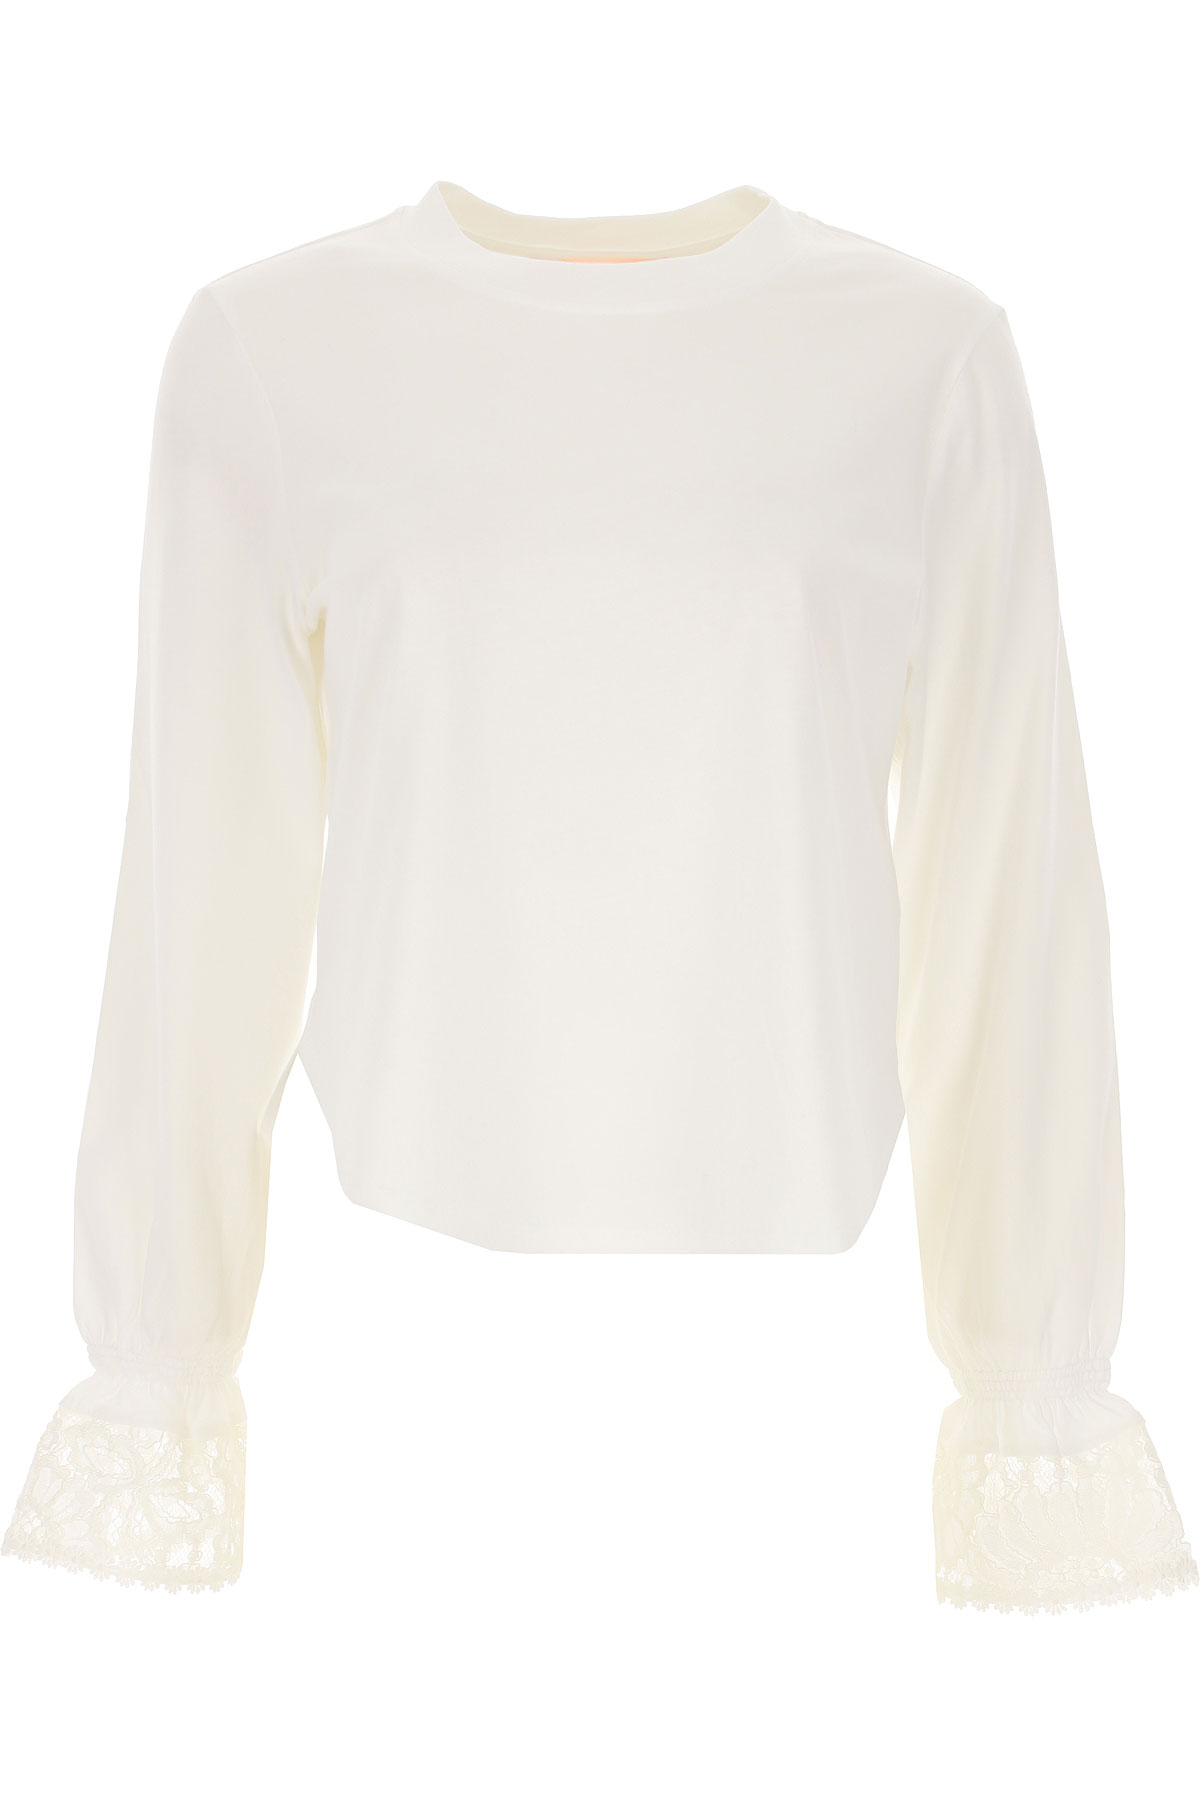 See By Chloe Top for Women On Sale, White, Cotton, 2019, 4 6